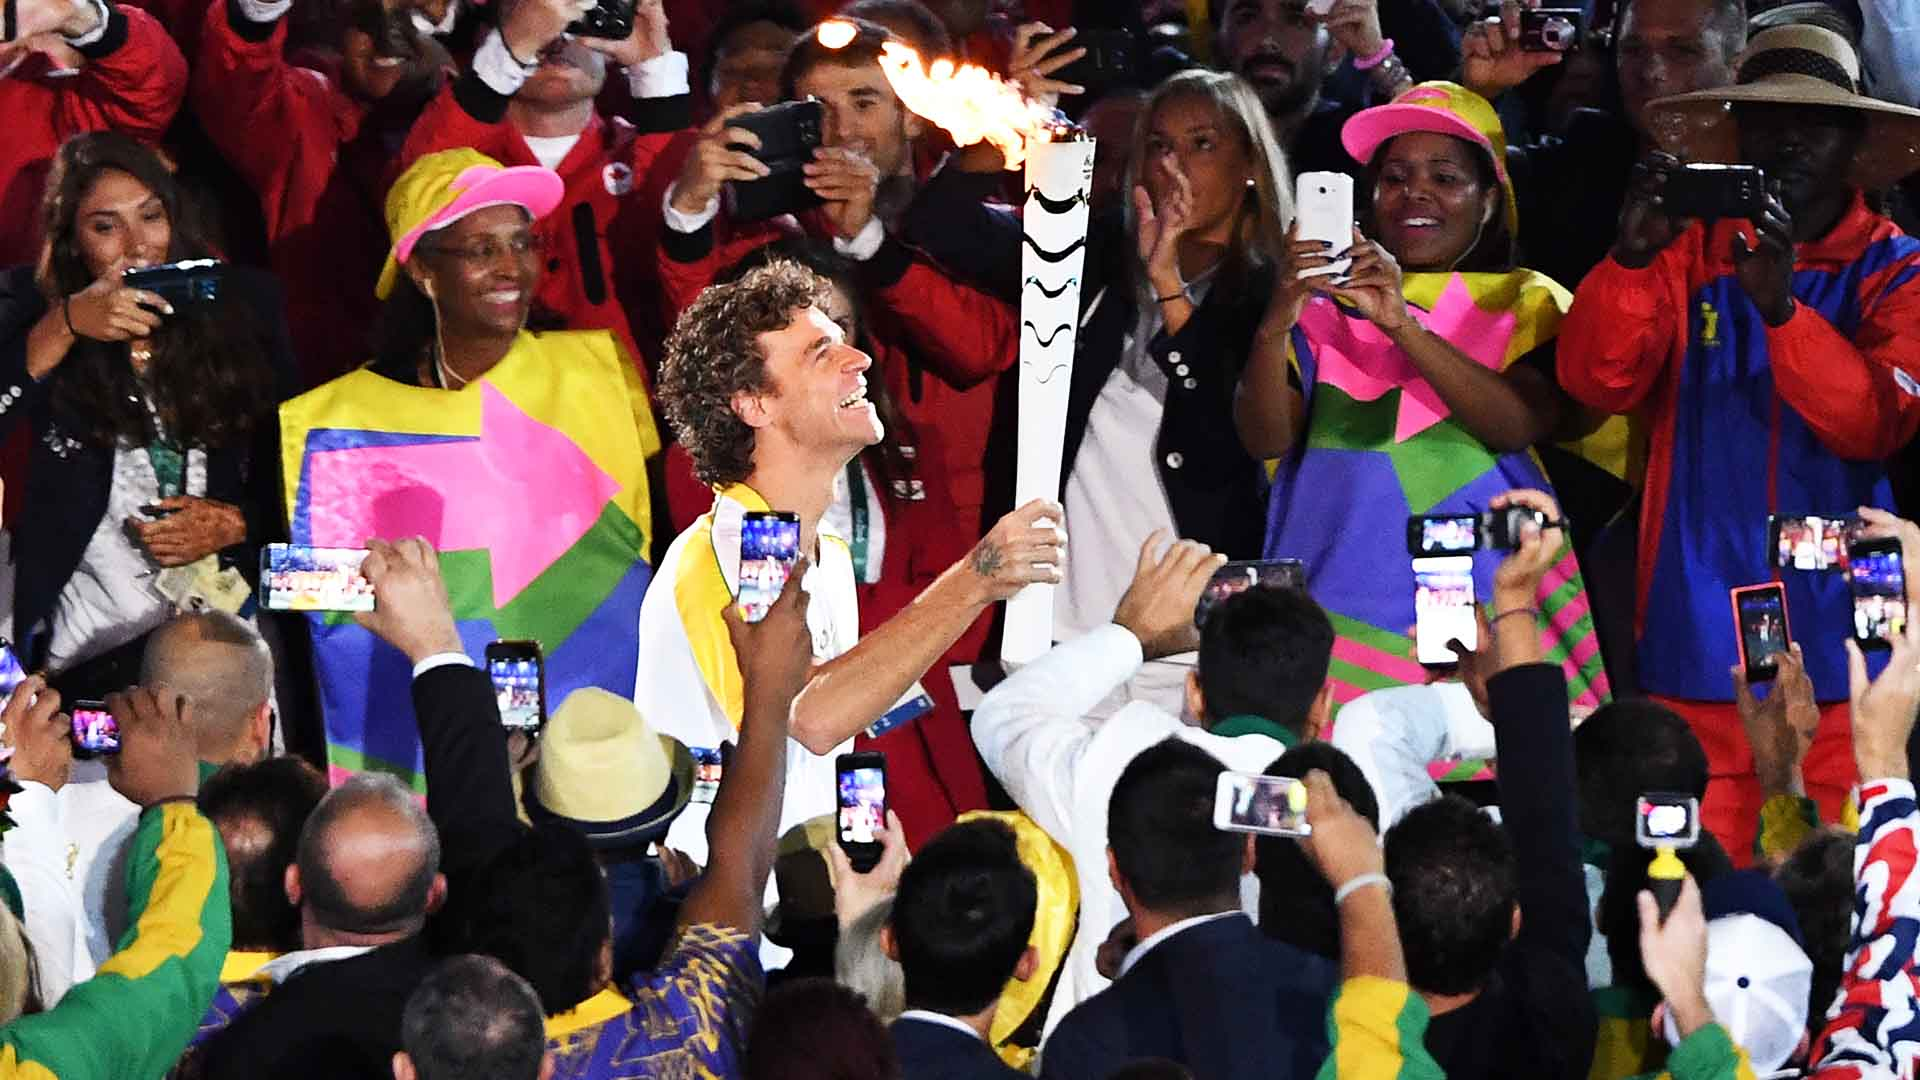 Gustavo Kuerten carries the Olympic flame into the Maracana Stadium at the 2016 Olympic Games in Rio de Janeiro.